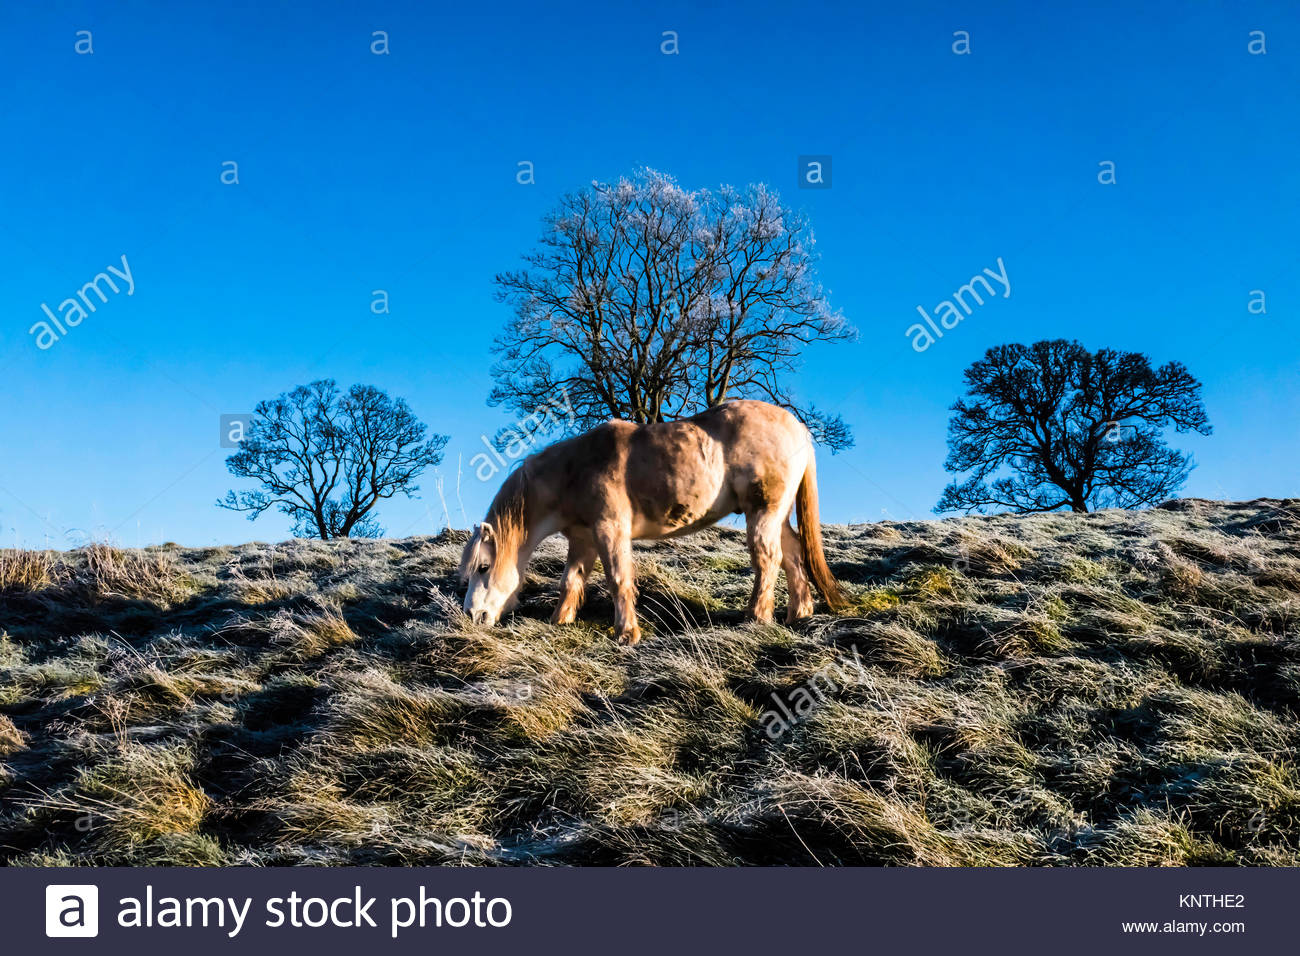 A pony grazing in a field covered in heavy frost. - Stock Image